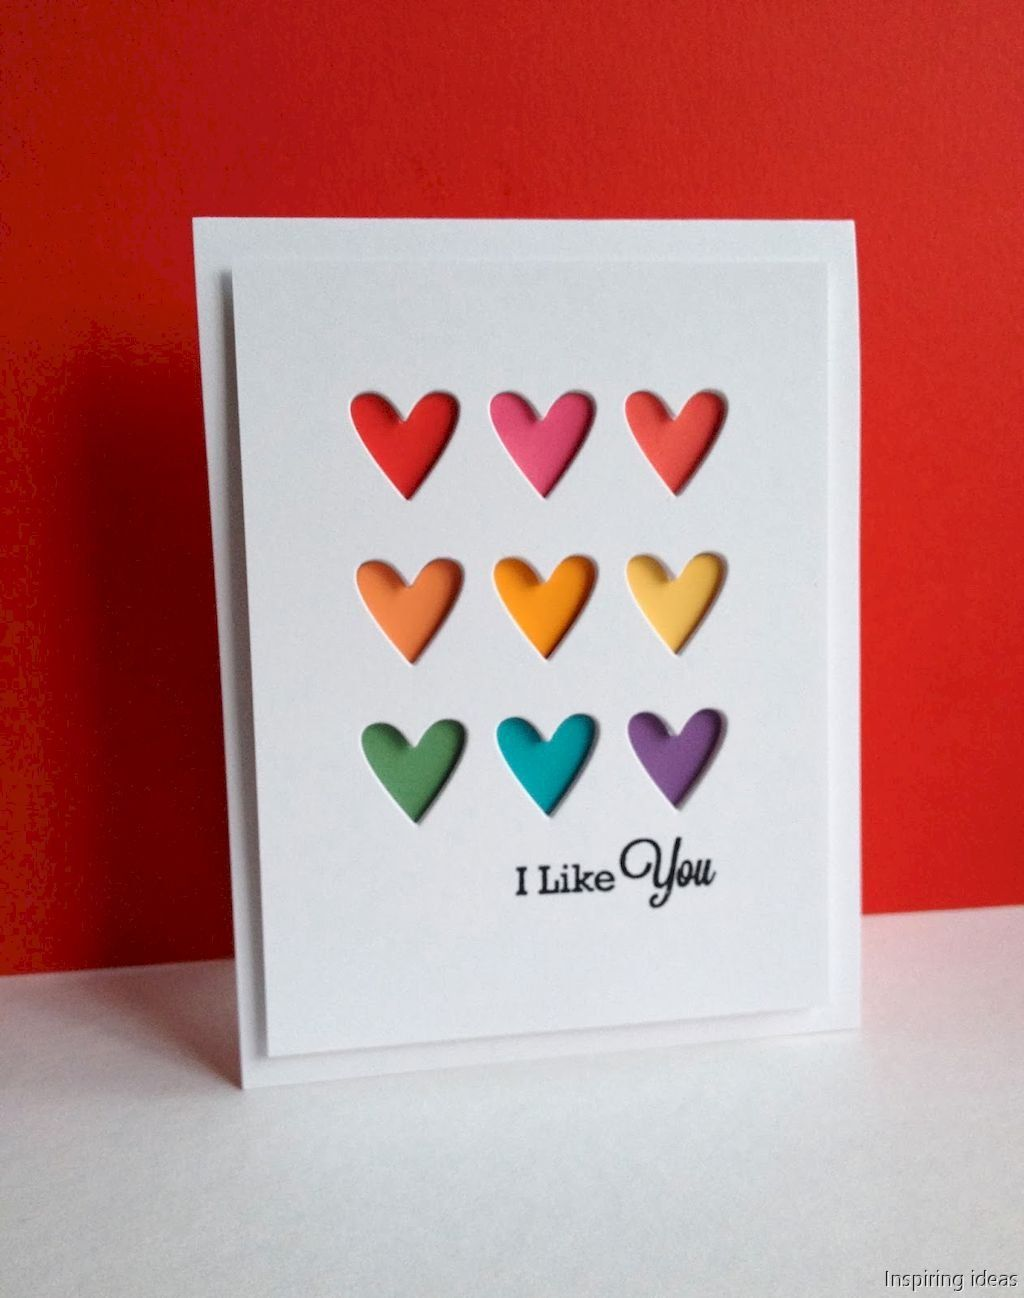 45 unforgetable valentine cards ideas homemade | Cards, Craft fairs ...